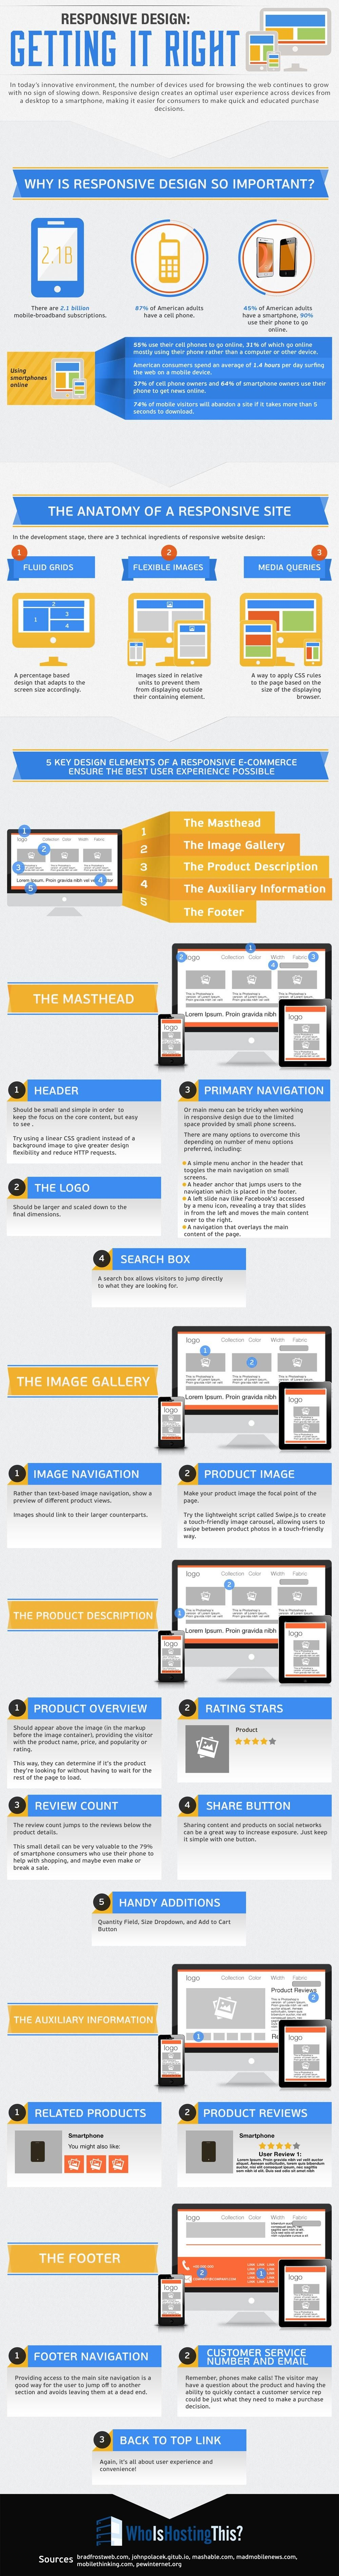 The Anatomy Of A Successful Responsive Website Infographic